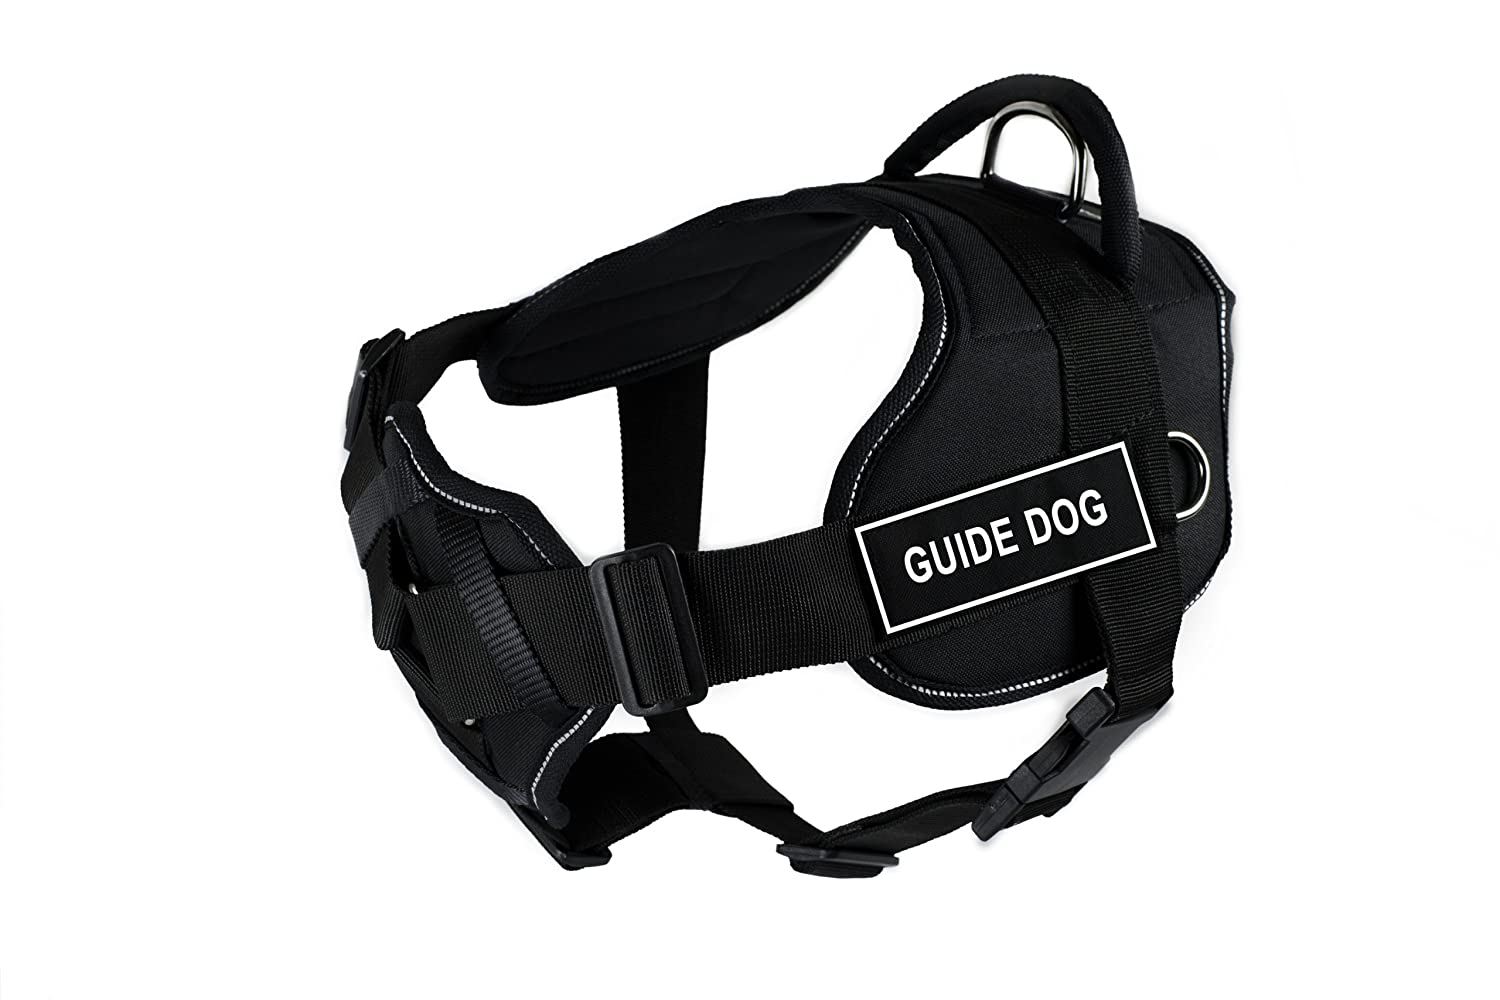 Dean & Tyler Fun Harness with Padded Chest Piece, Guide Dog, Large, Black with Reflective Trim